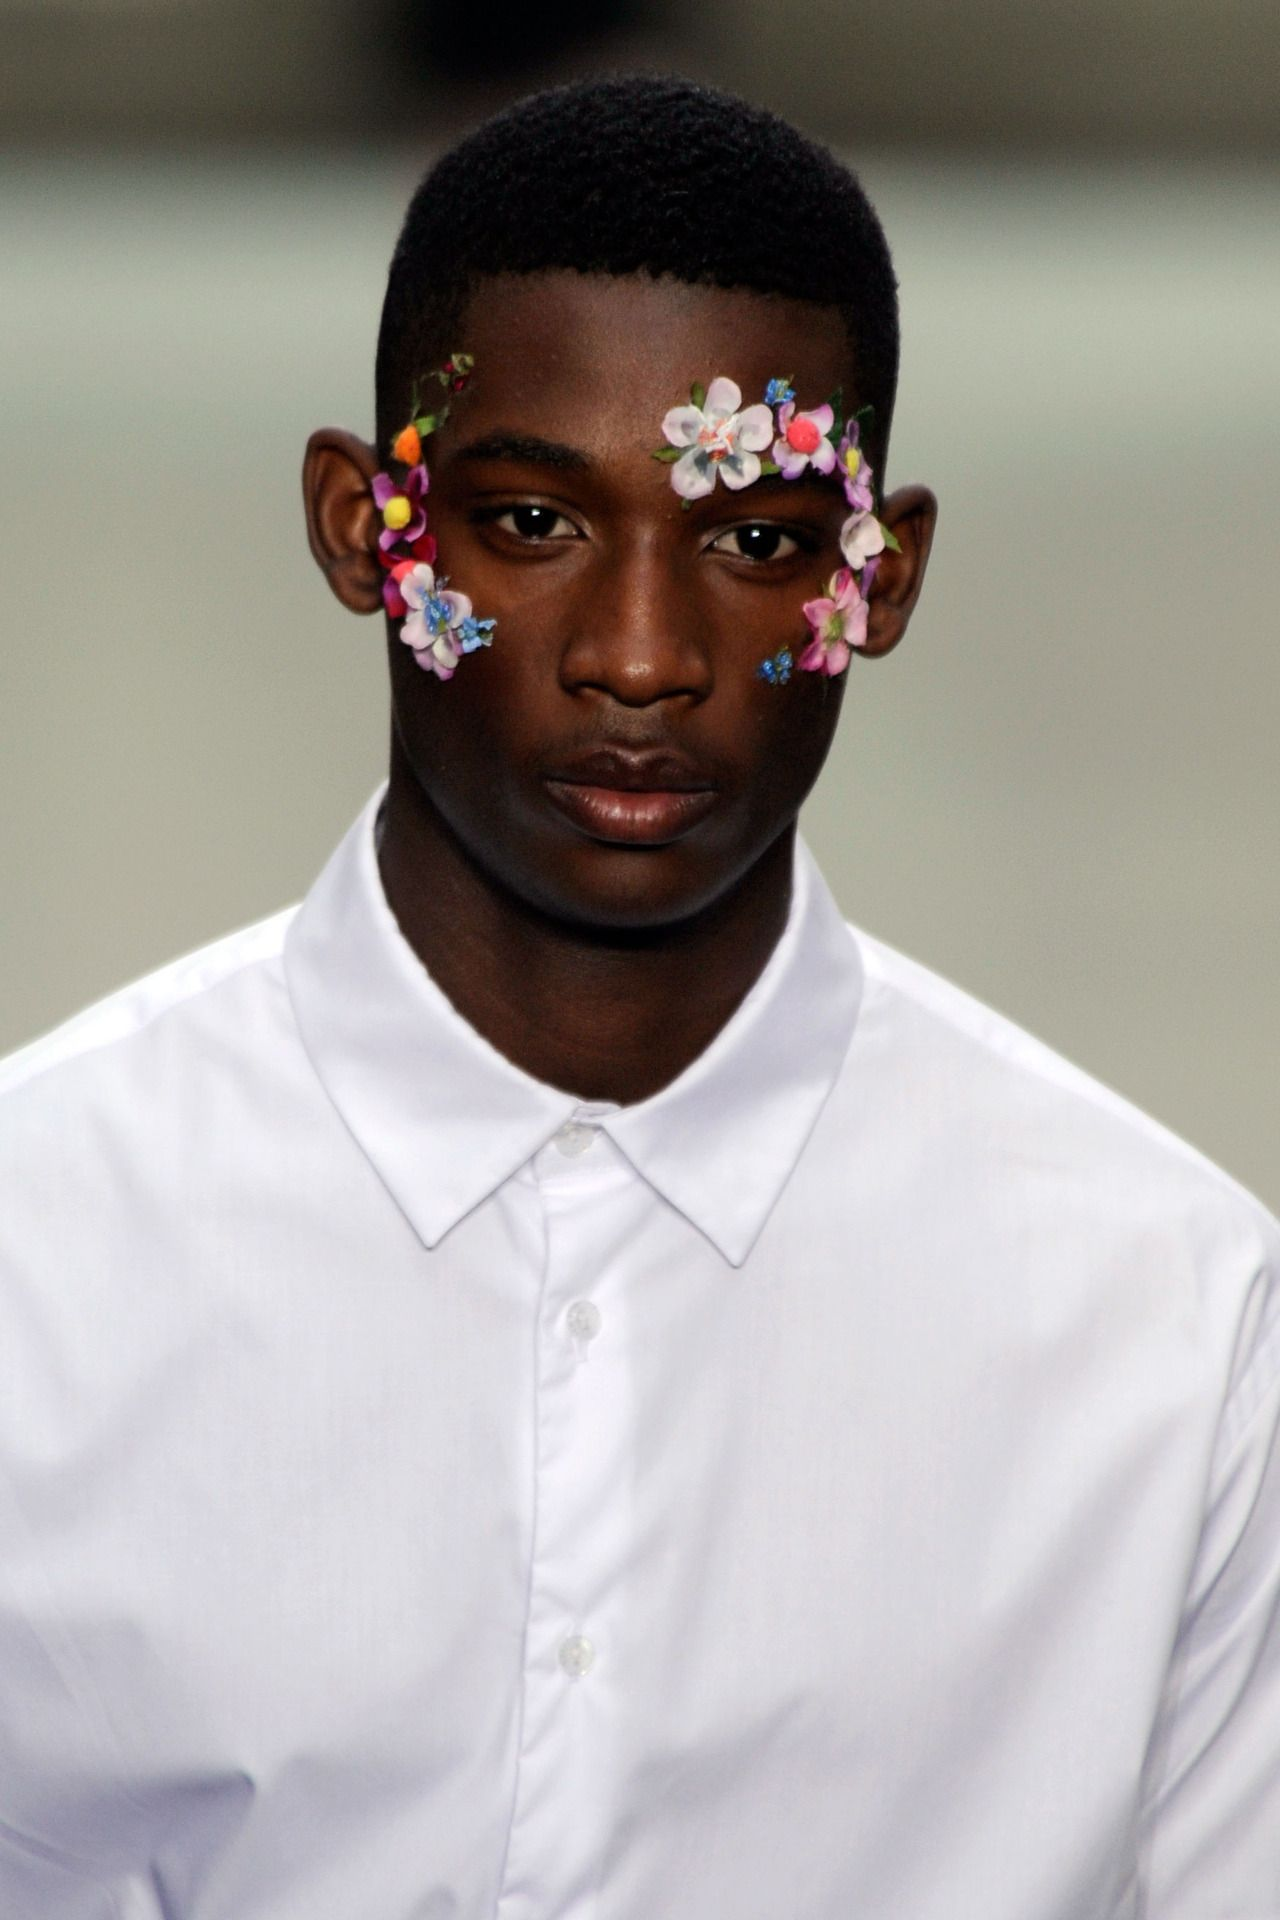 Floral face decoration at Christopher Shannon SS13 menswear show in London